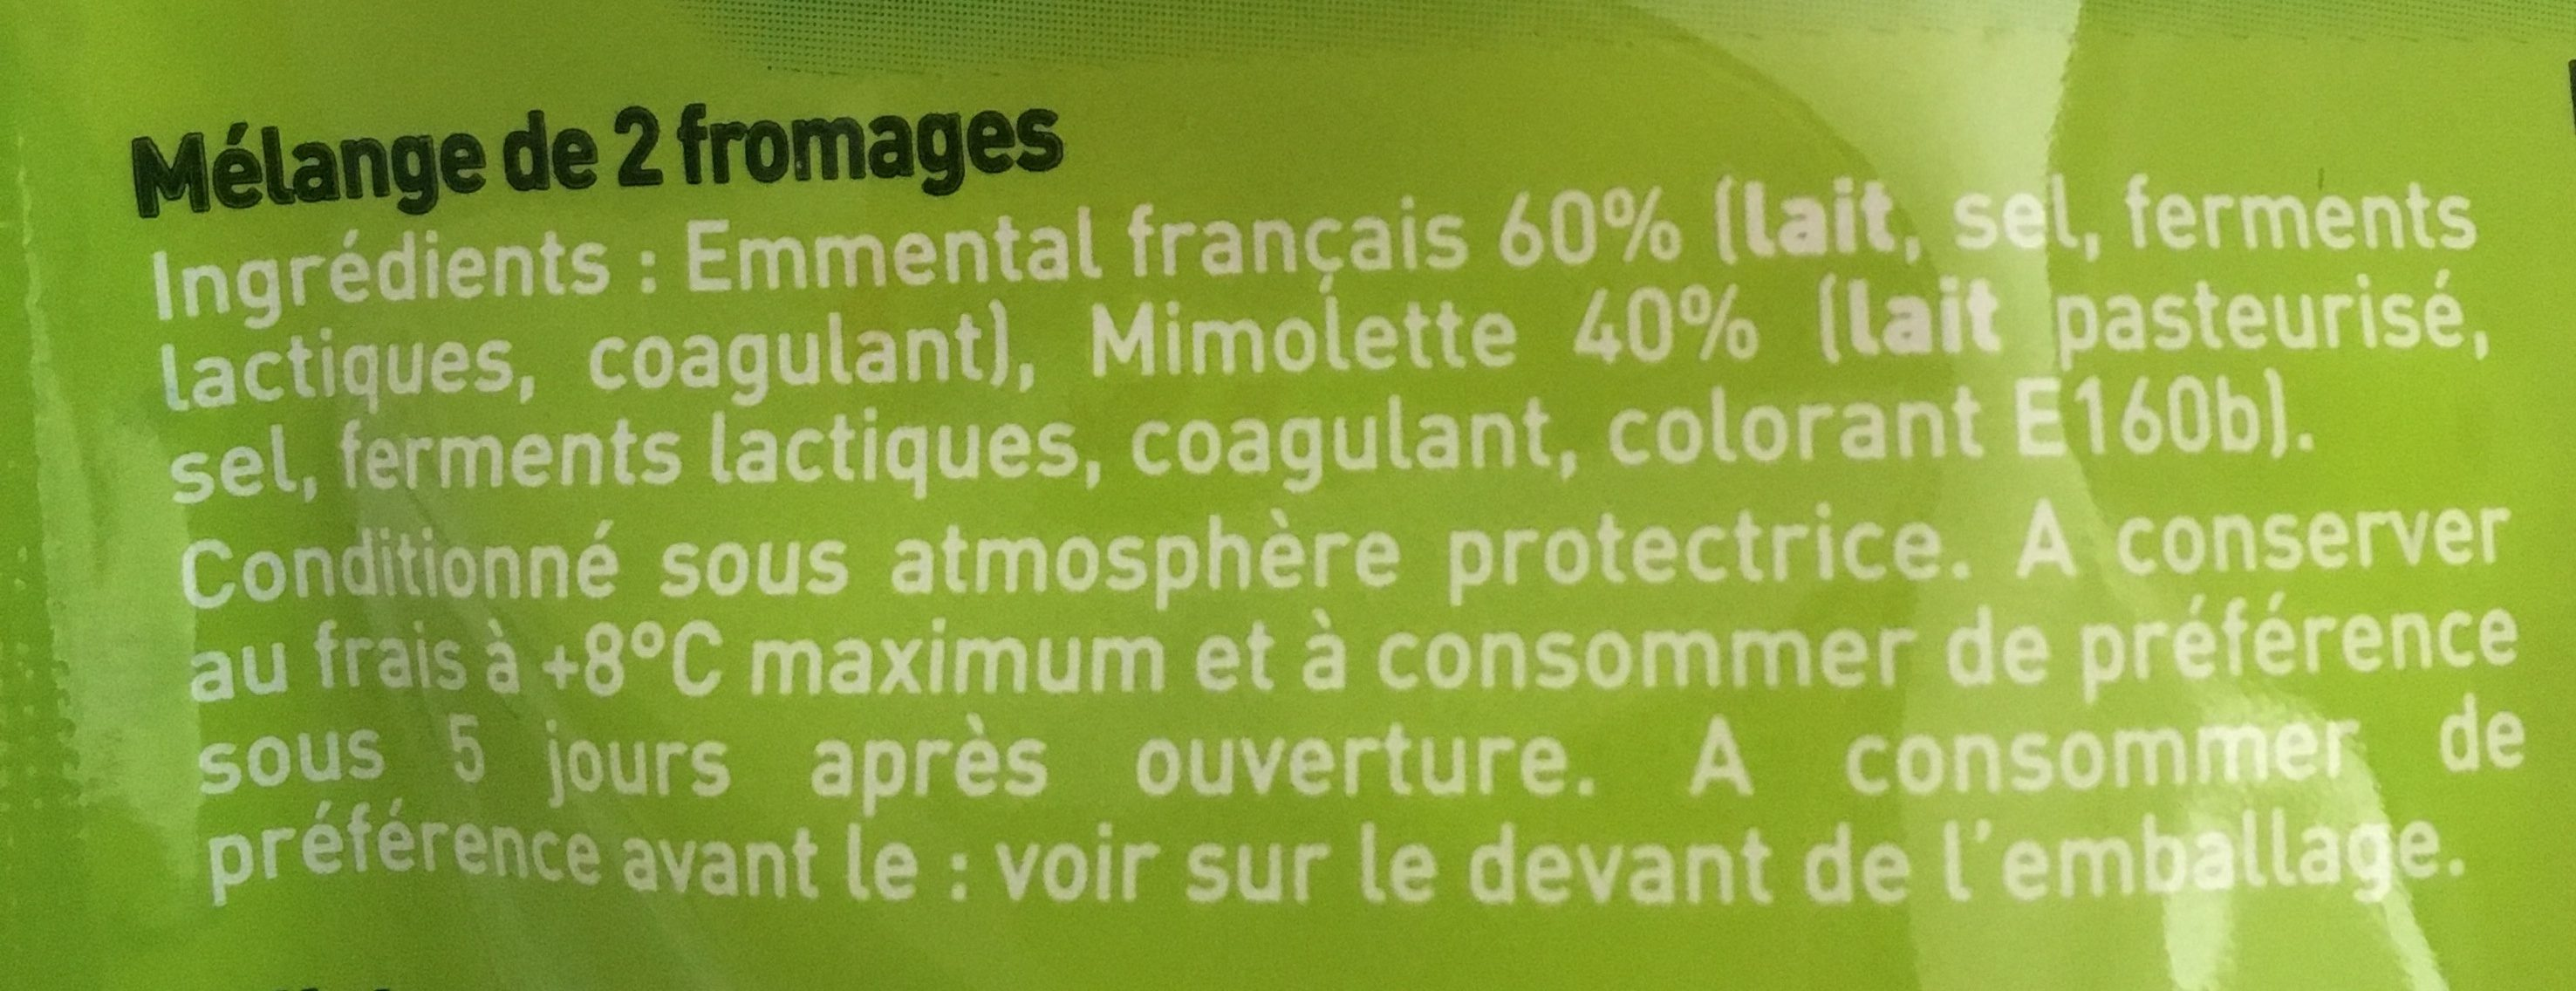 Fromage Pour Salade - Ingredients